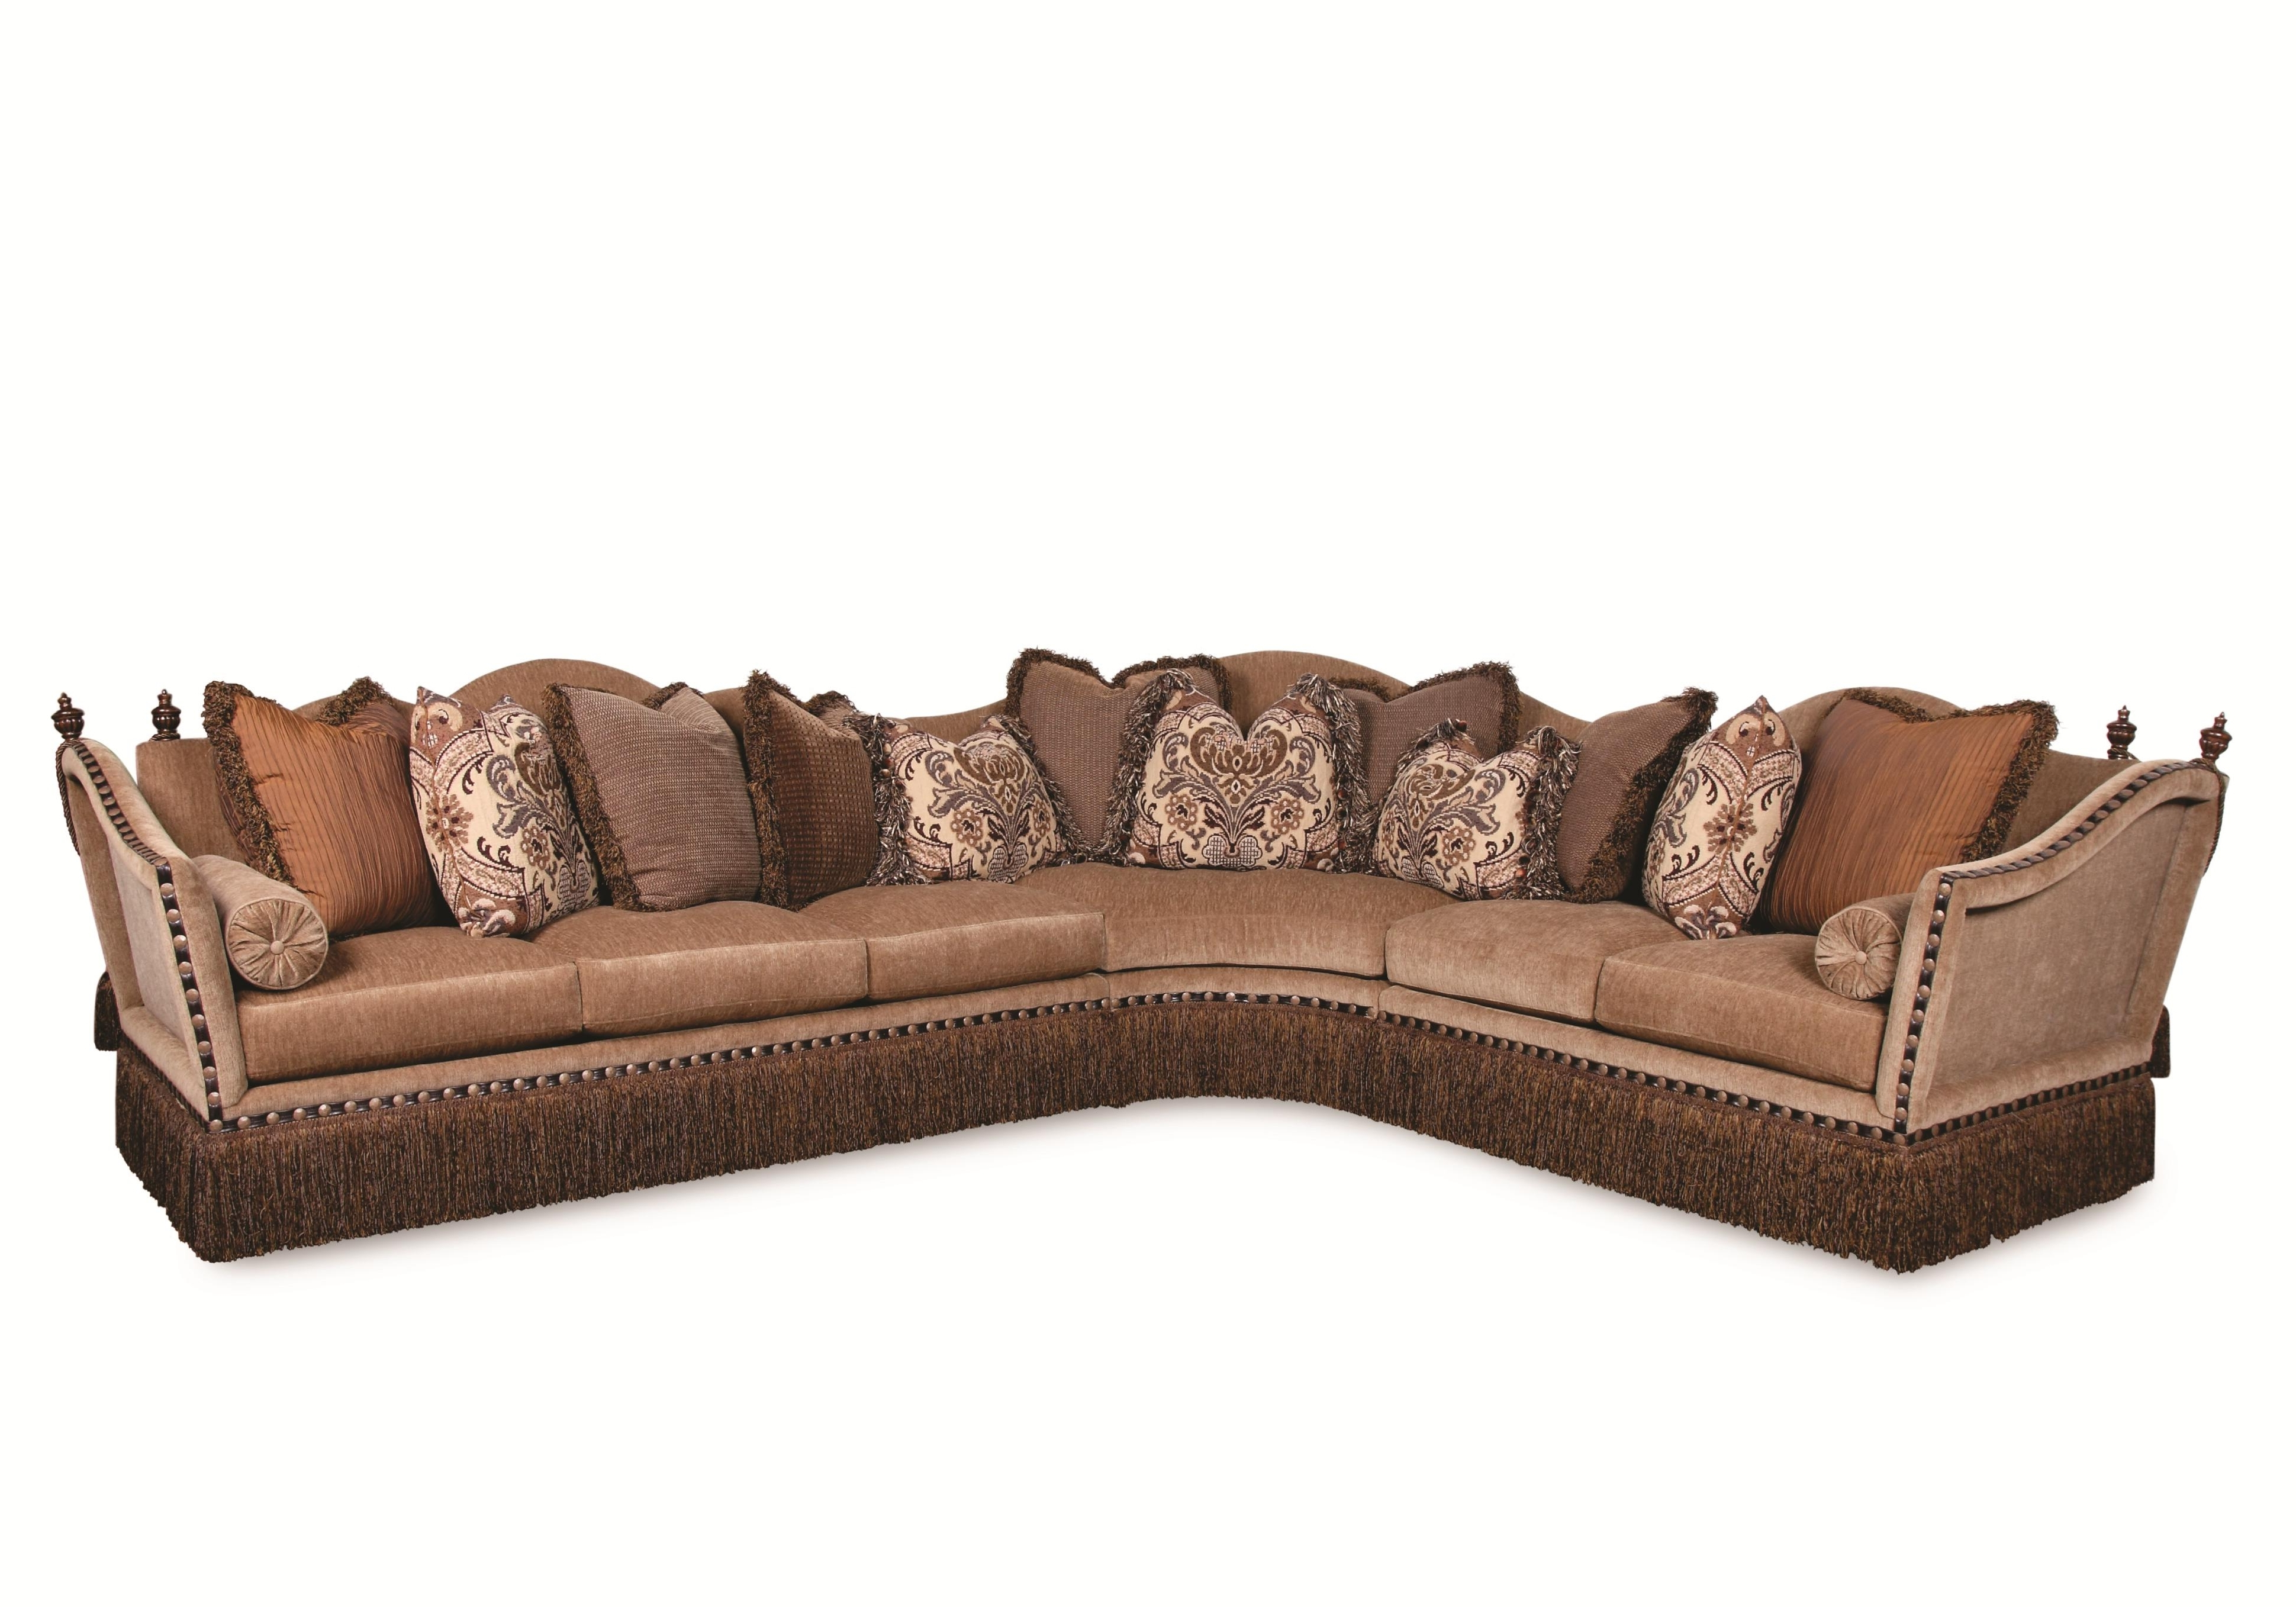 Lorraine Fringed Sectional Sofarachlin Classics (View 7 of 20)